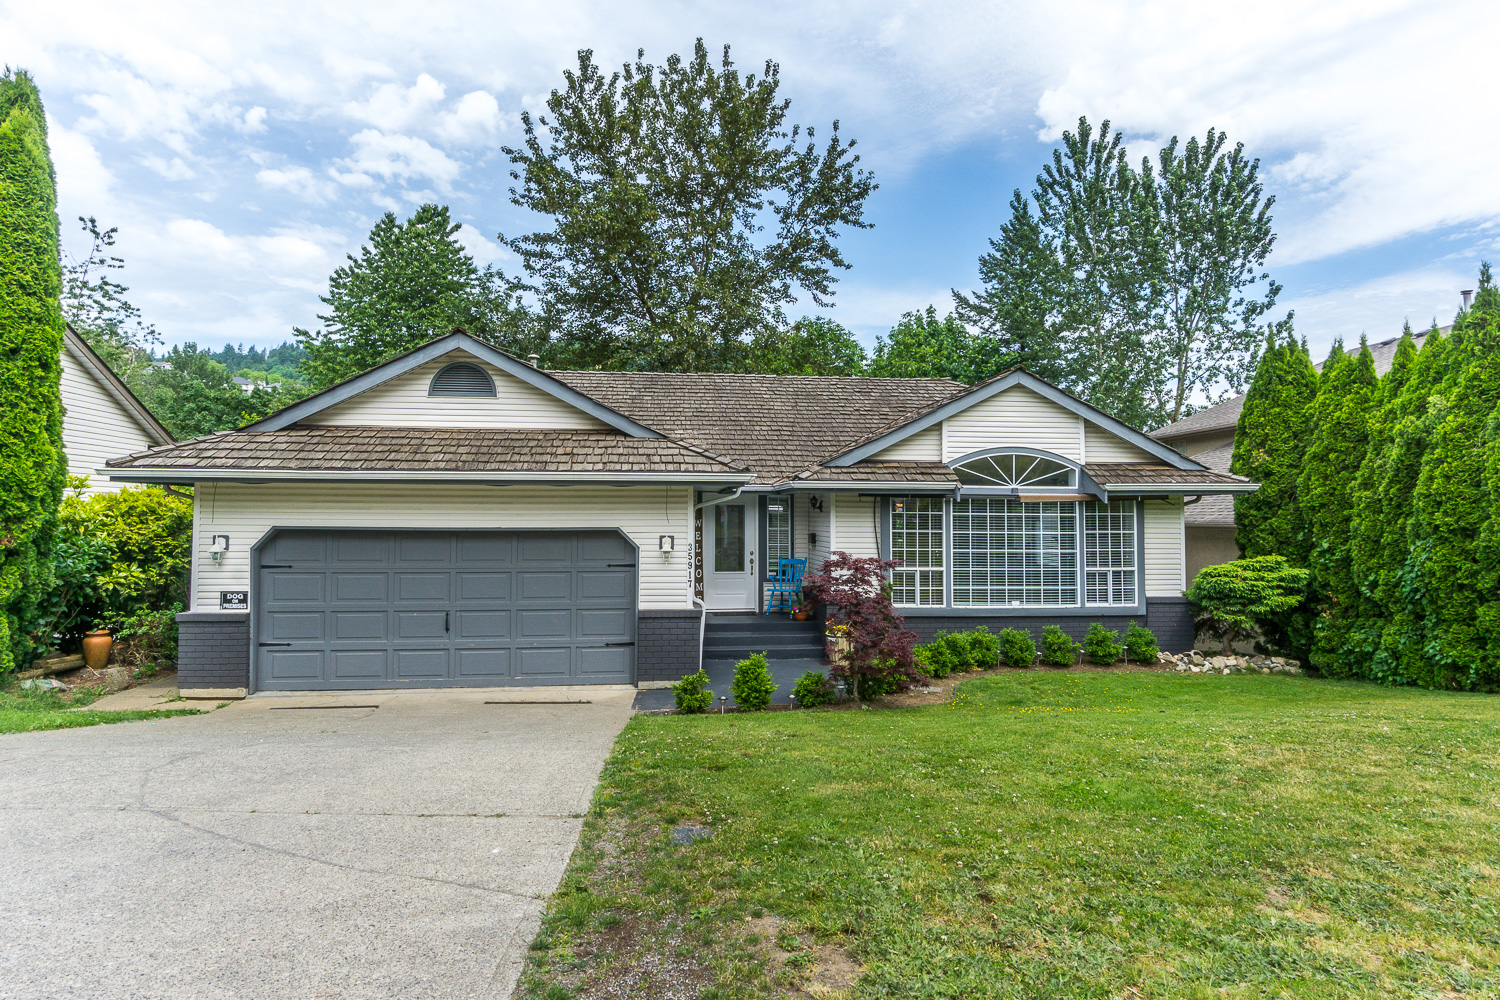 East Abbotsford Rancher with 2 bedroom suited basement